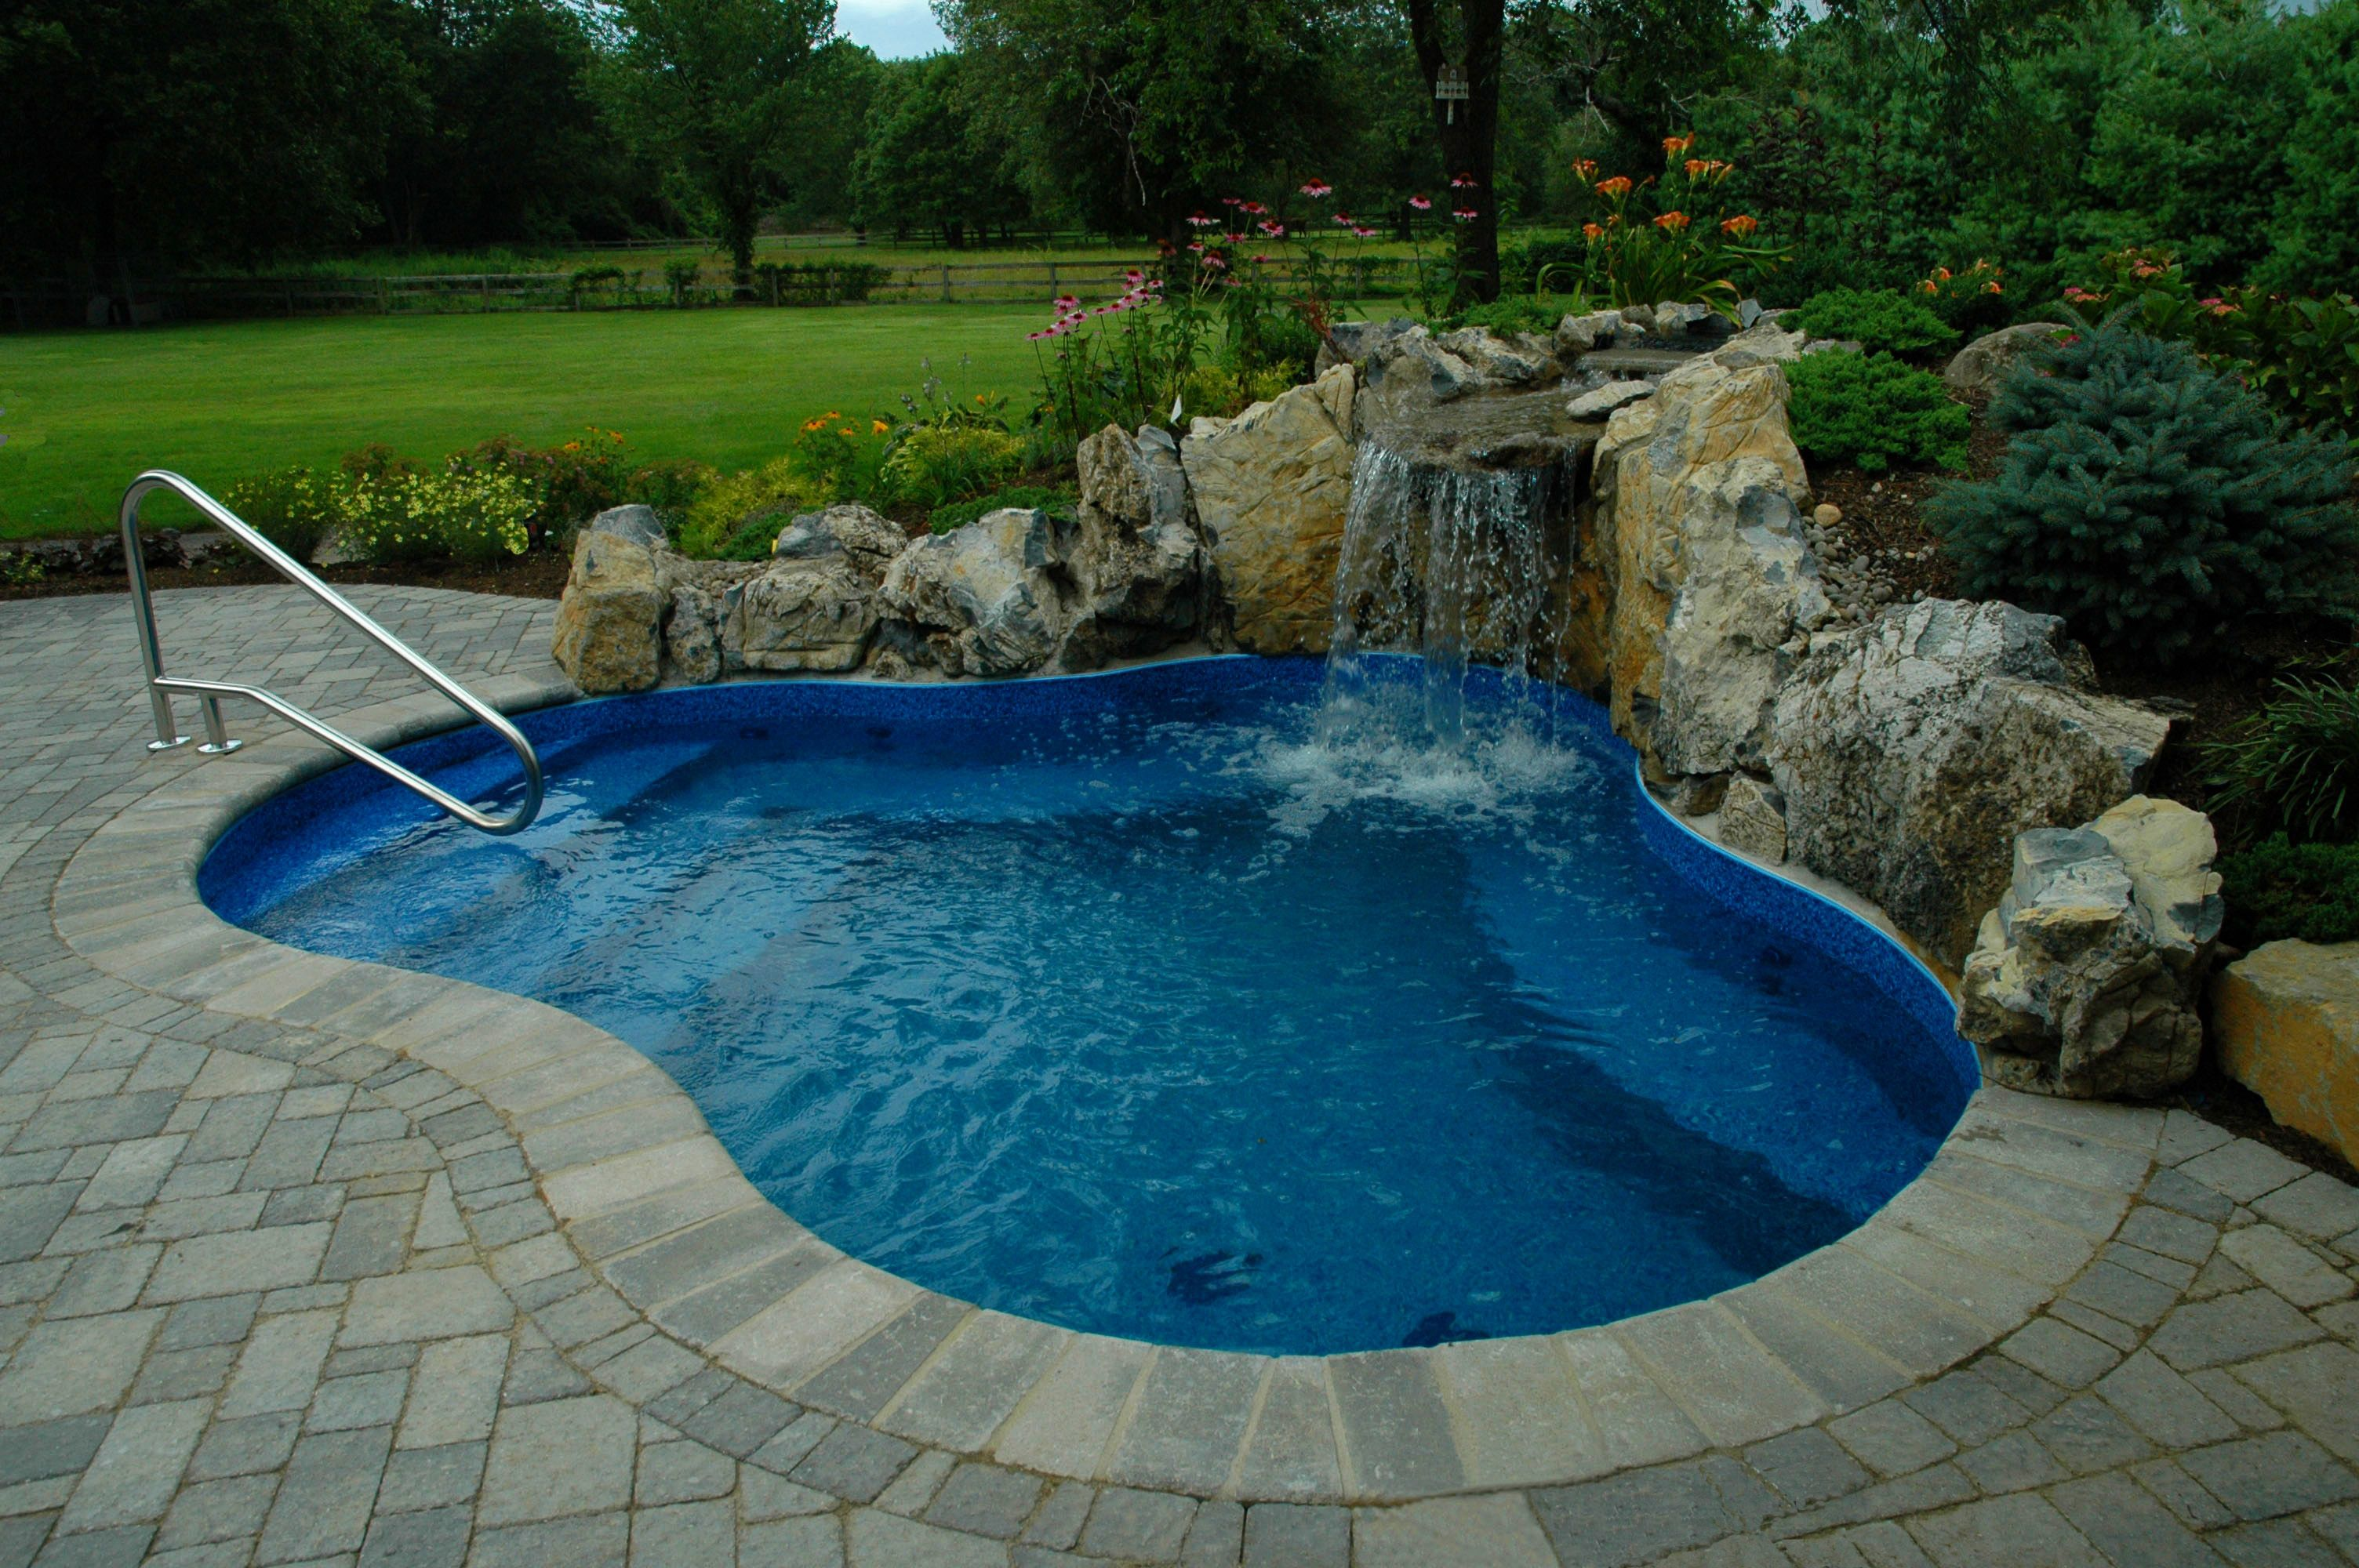 Dsc 7607r Fixed 1 Jpg 3 008 2 000 Pixels Small Inground Pool Small Pool Design Backyard Pool Designs